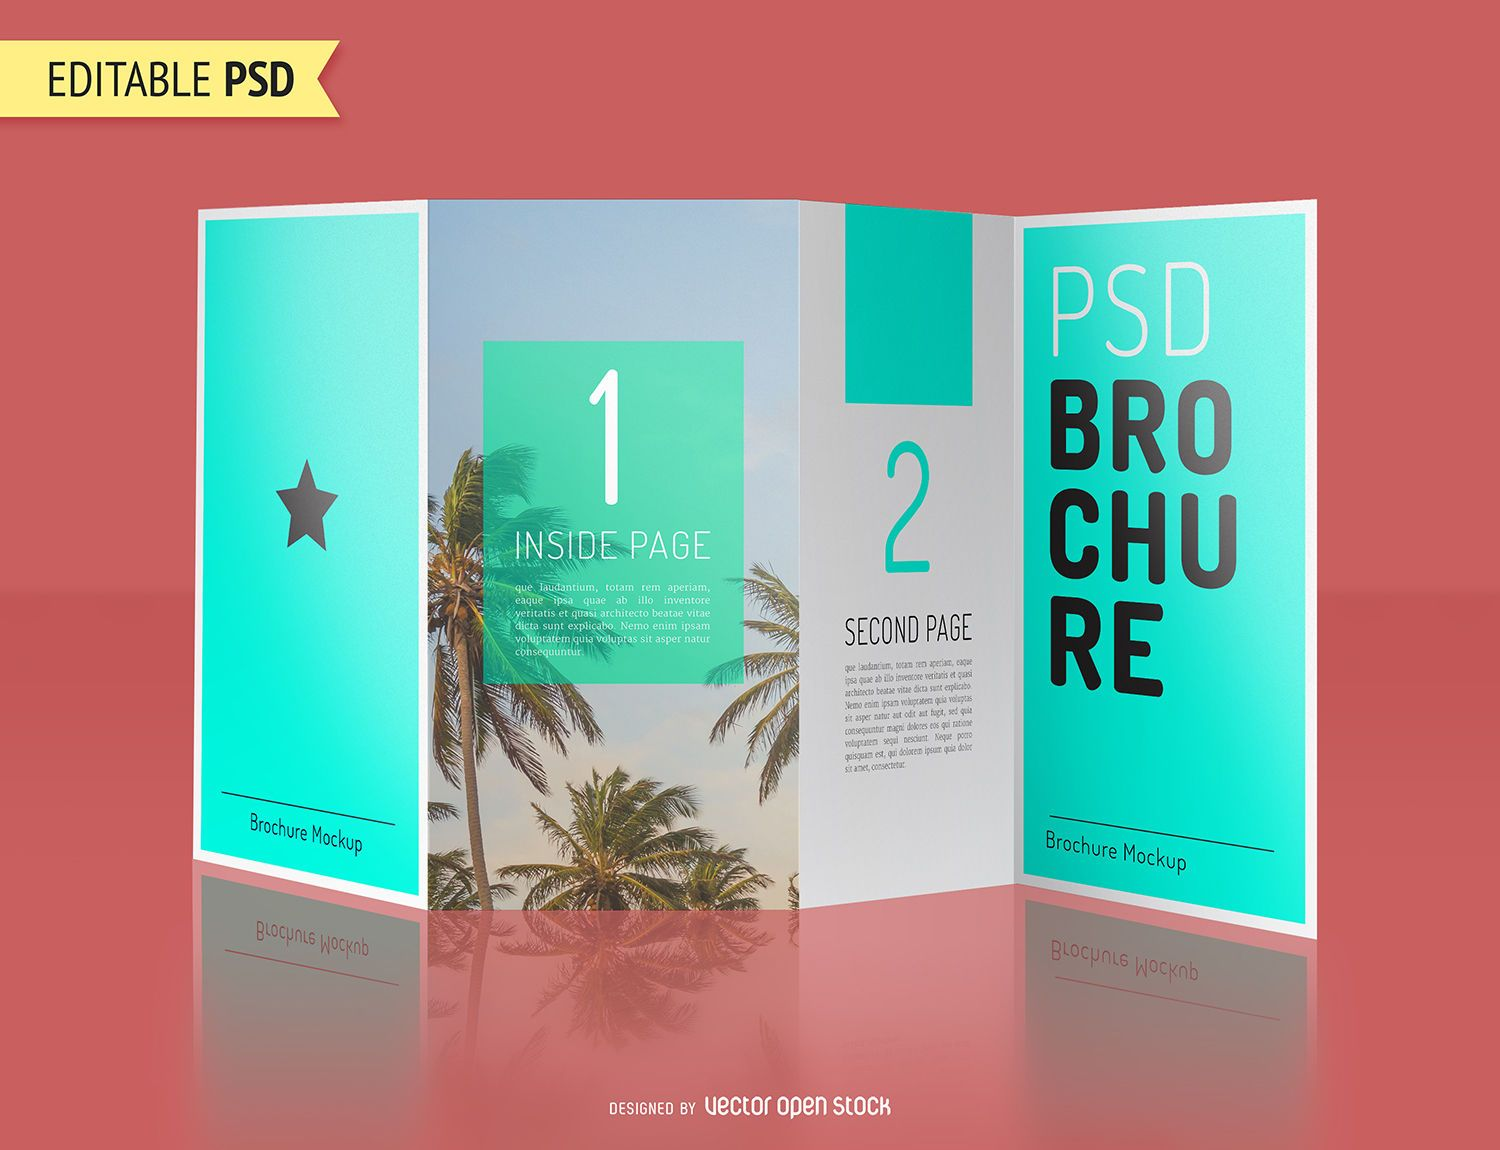 Brochure mockup template PSD - PSD Mockup download